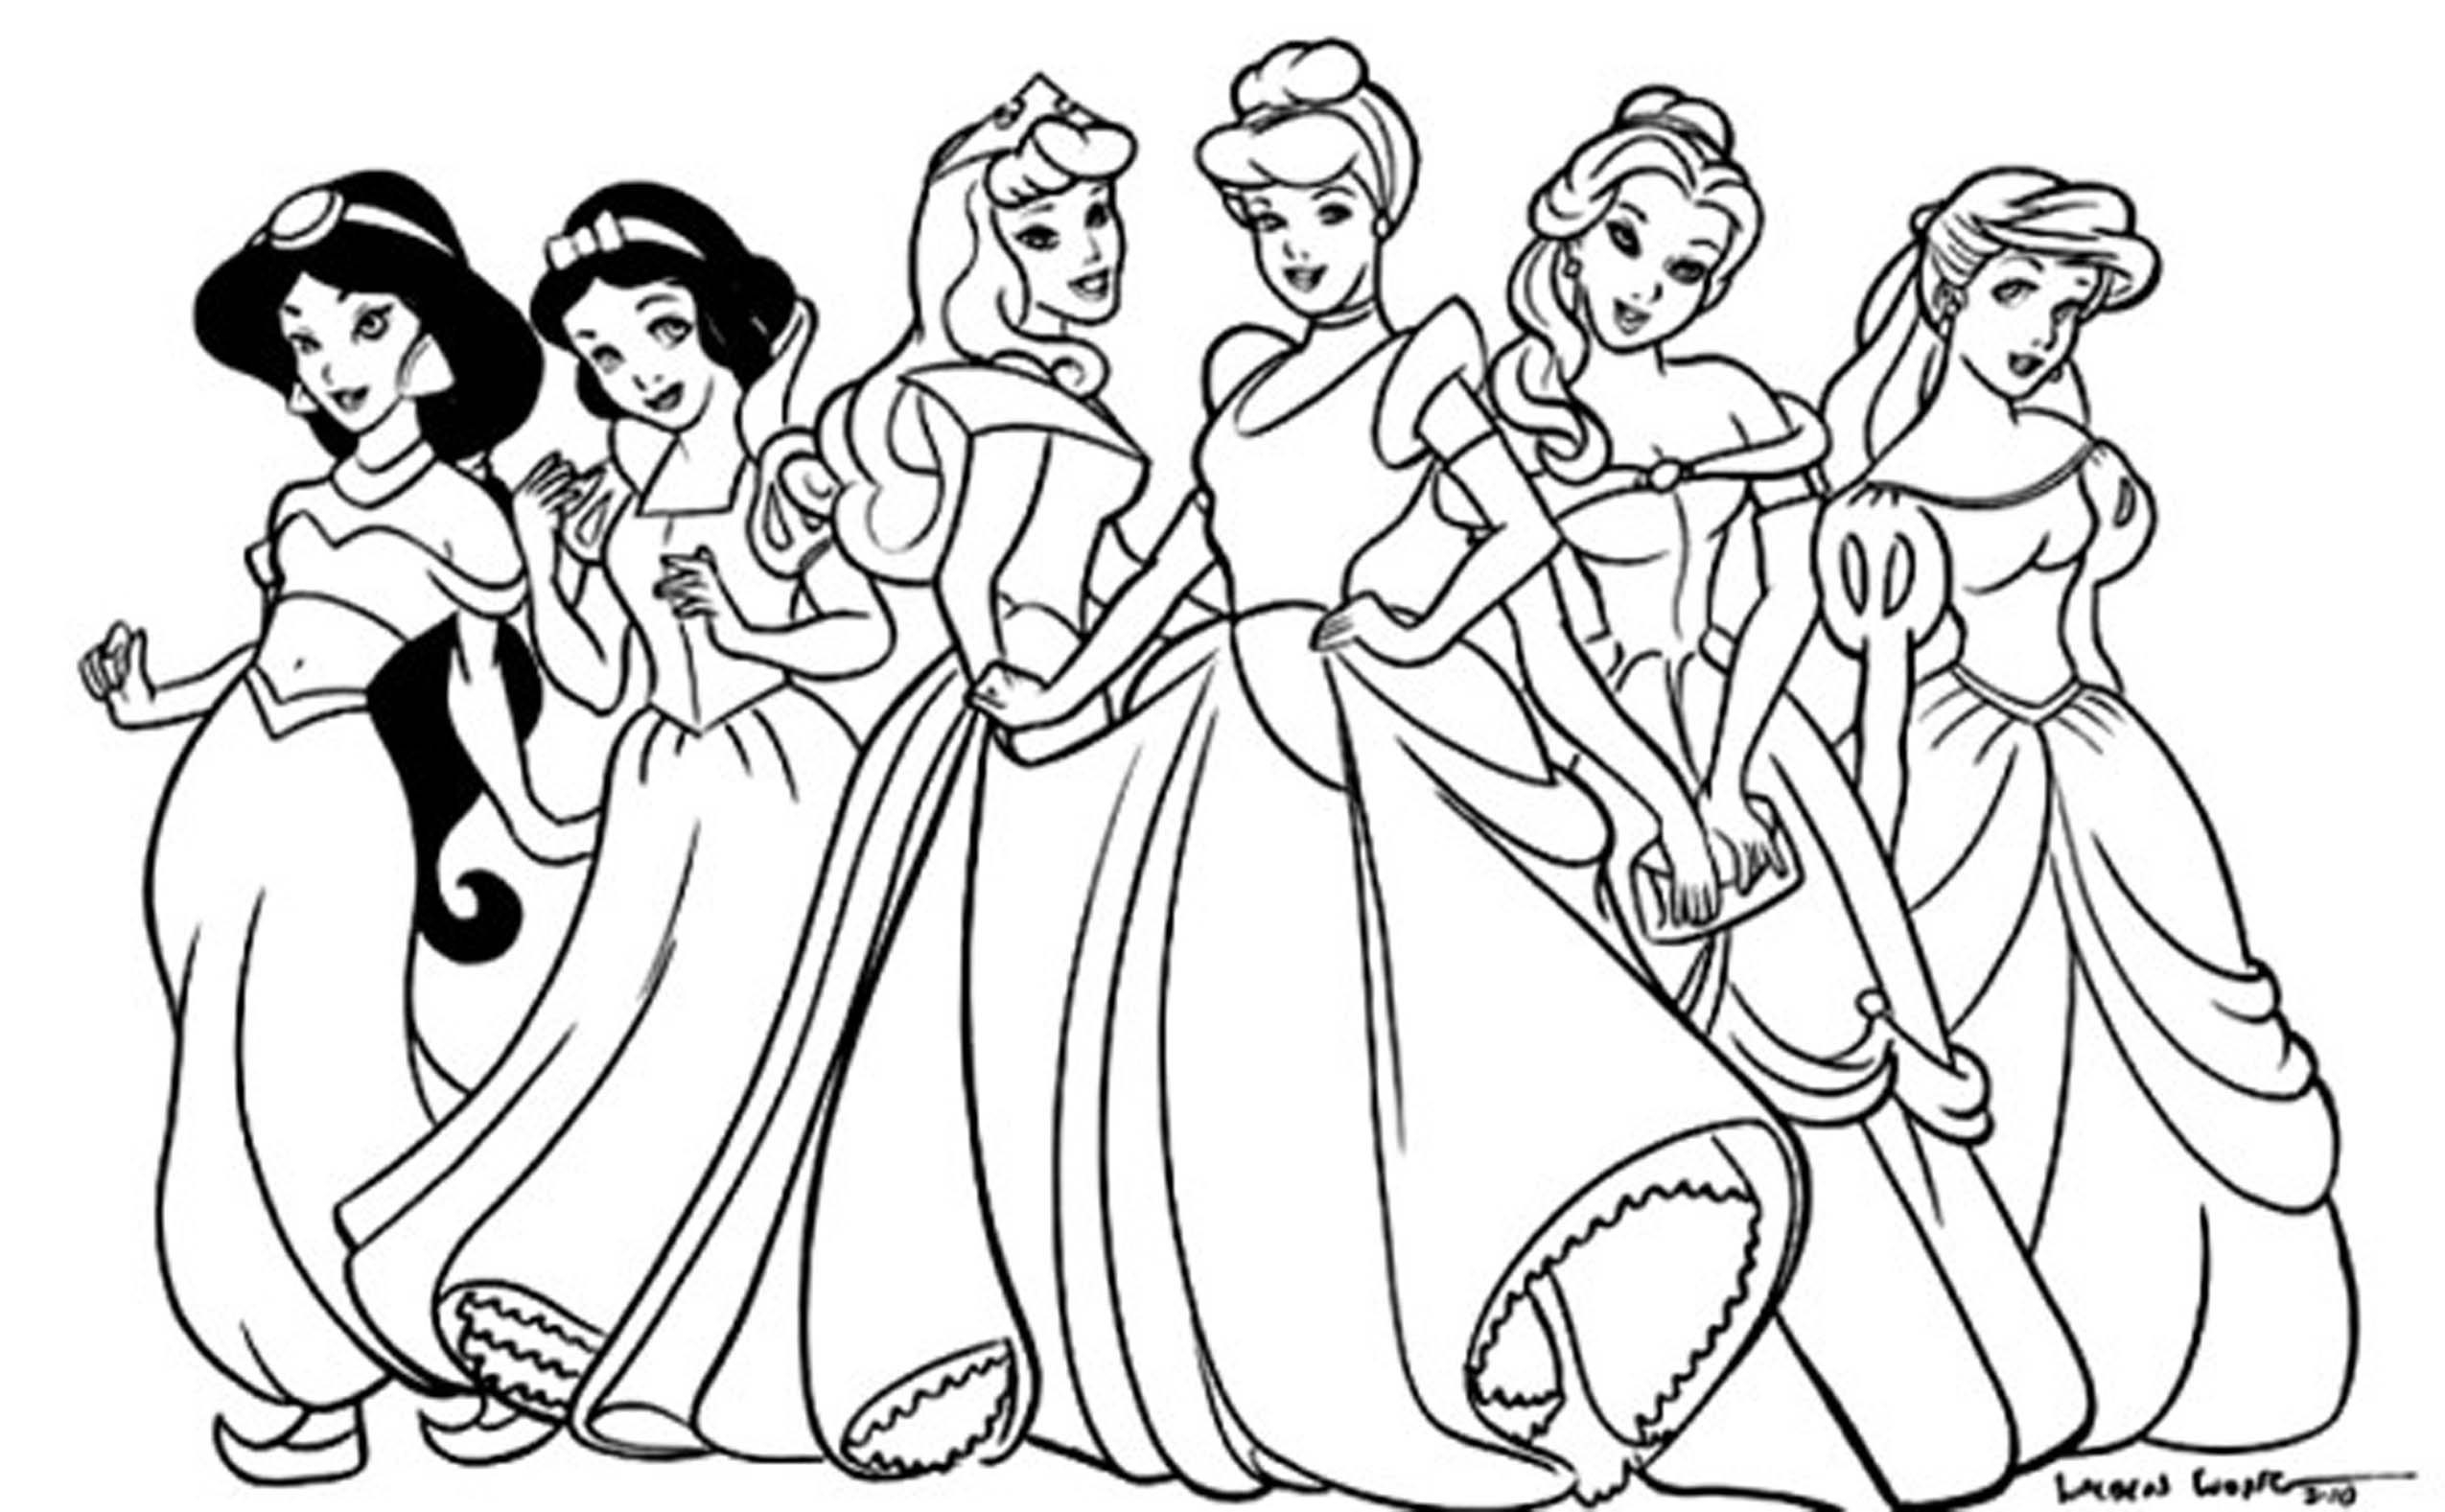 graphic about Printable Princess Picture referred to as Printable Princess Coloring Web pages Princess Coloring Internet pages